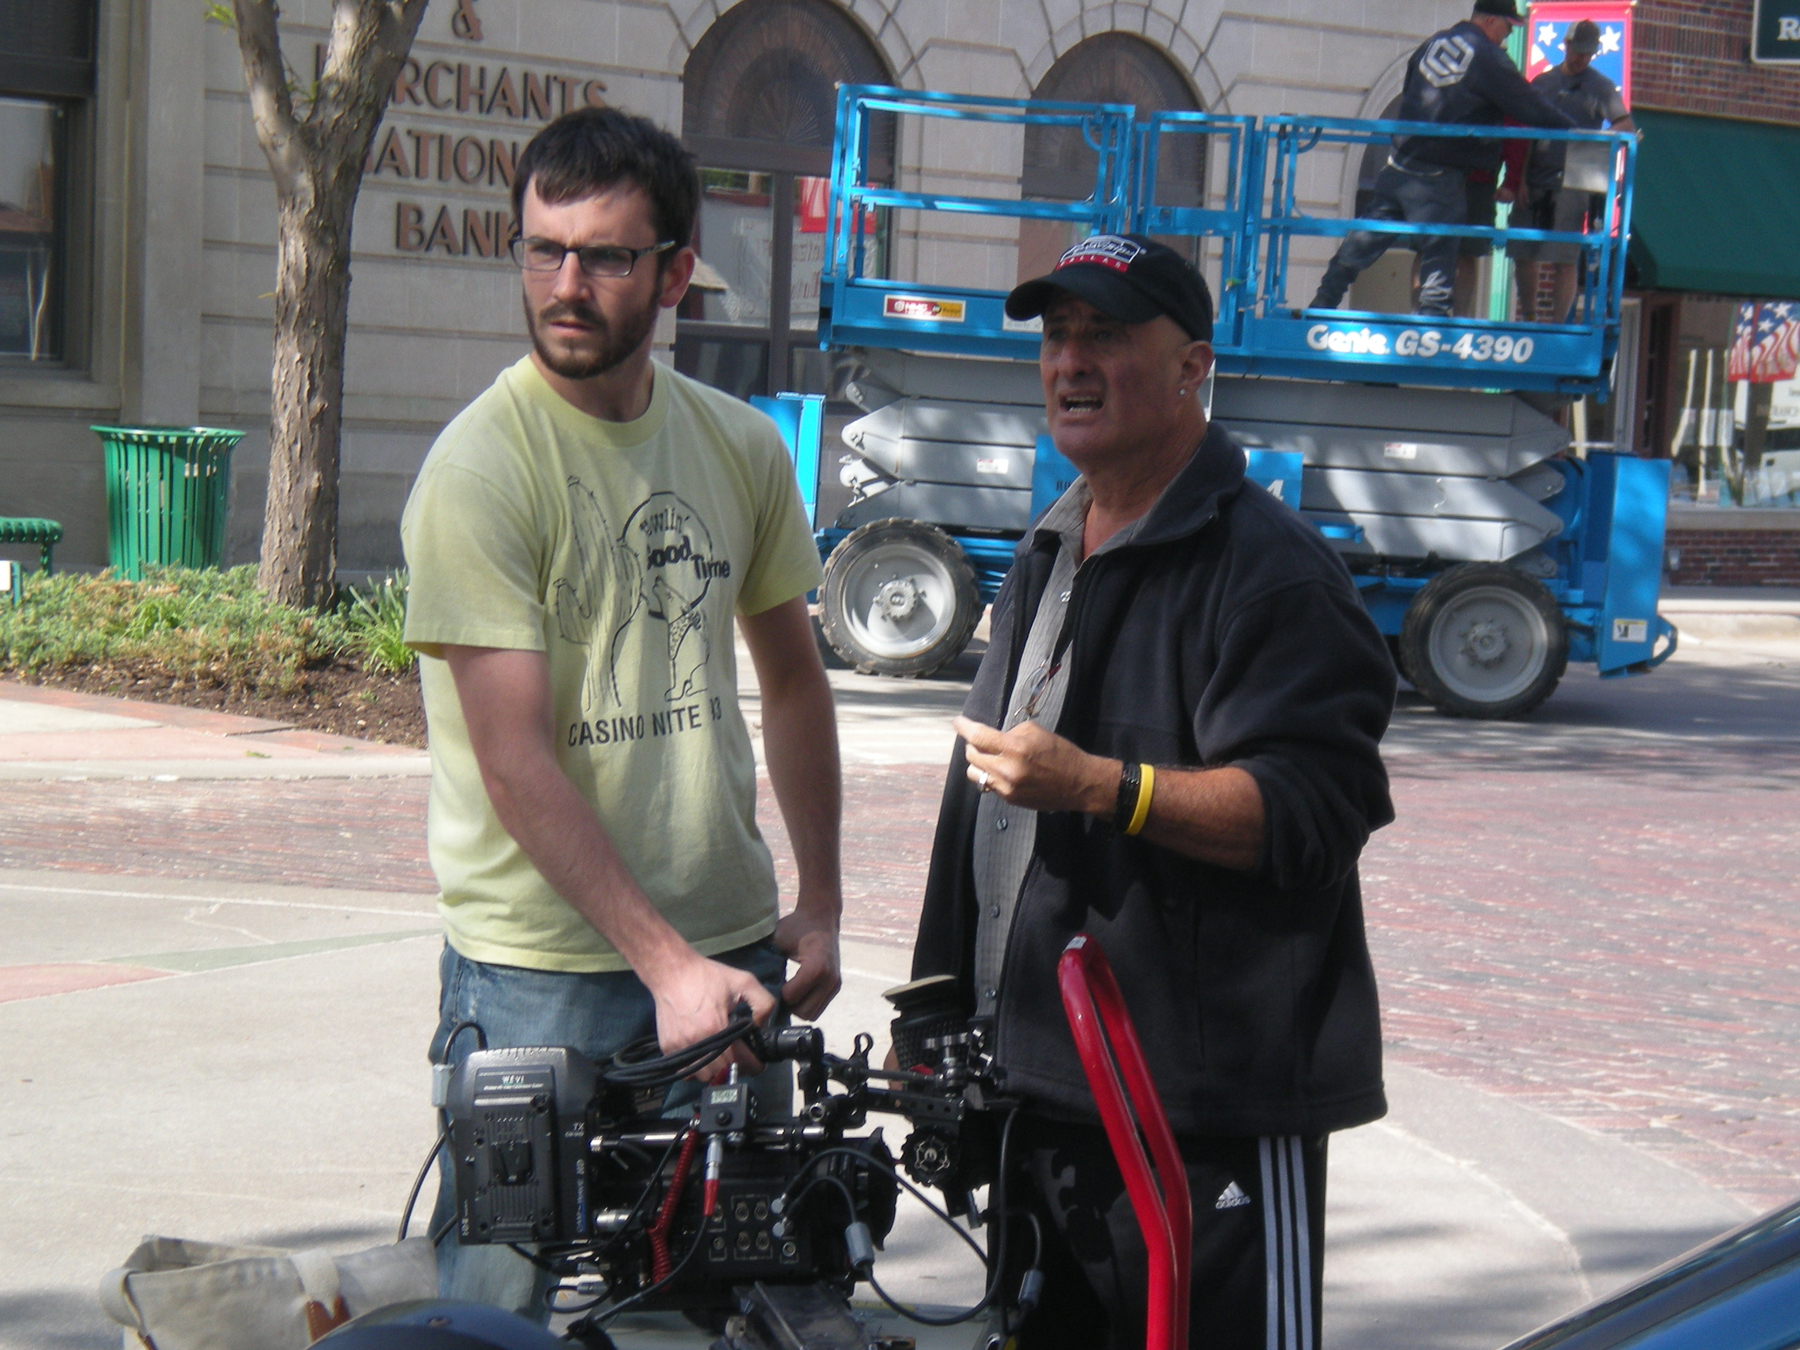 Theater and film student Aaron Nix (left) receives instructions from camera assistant Bob Heine during filming of the first Carson film.